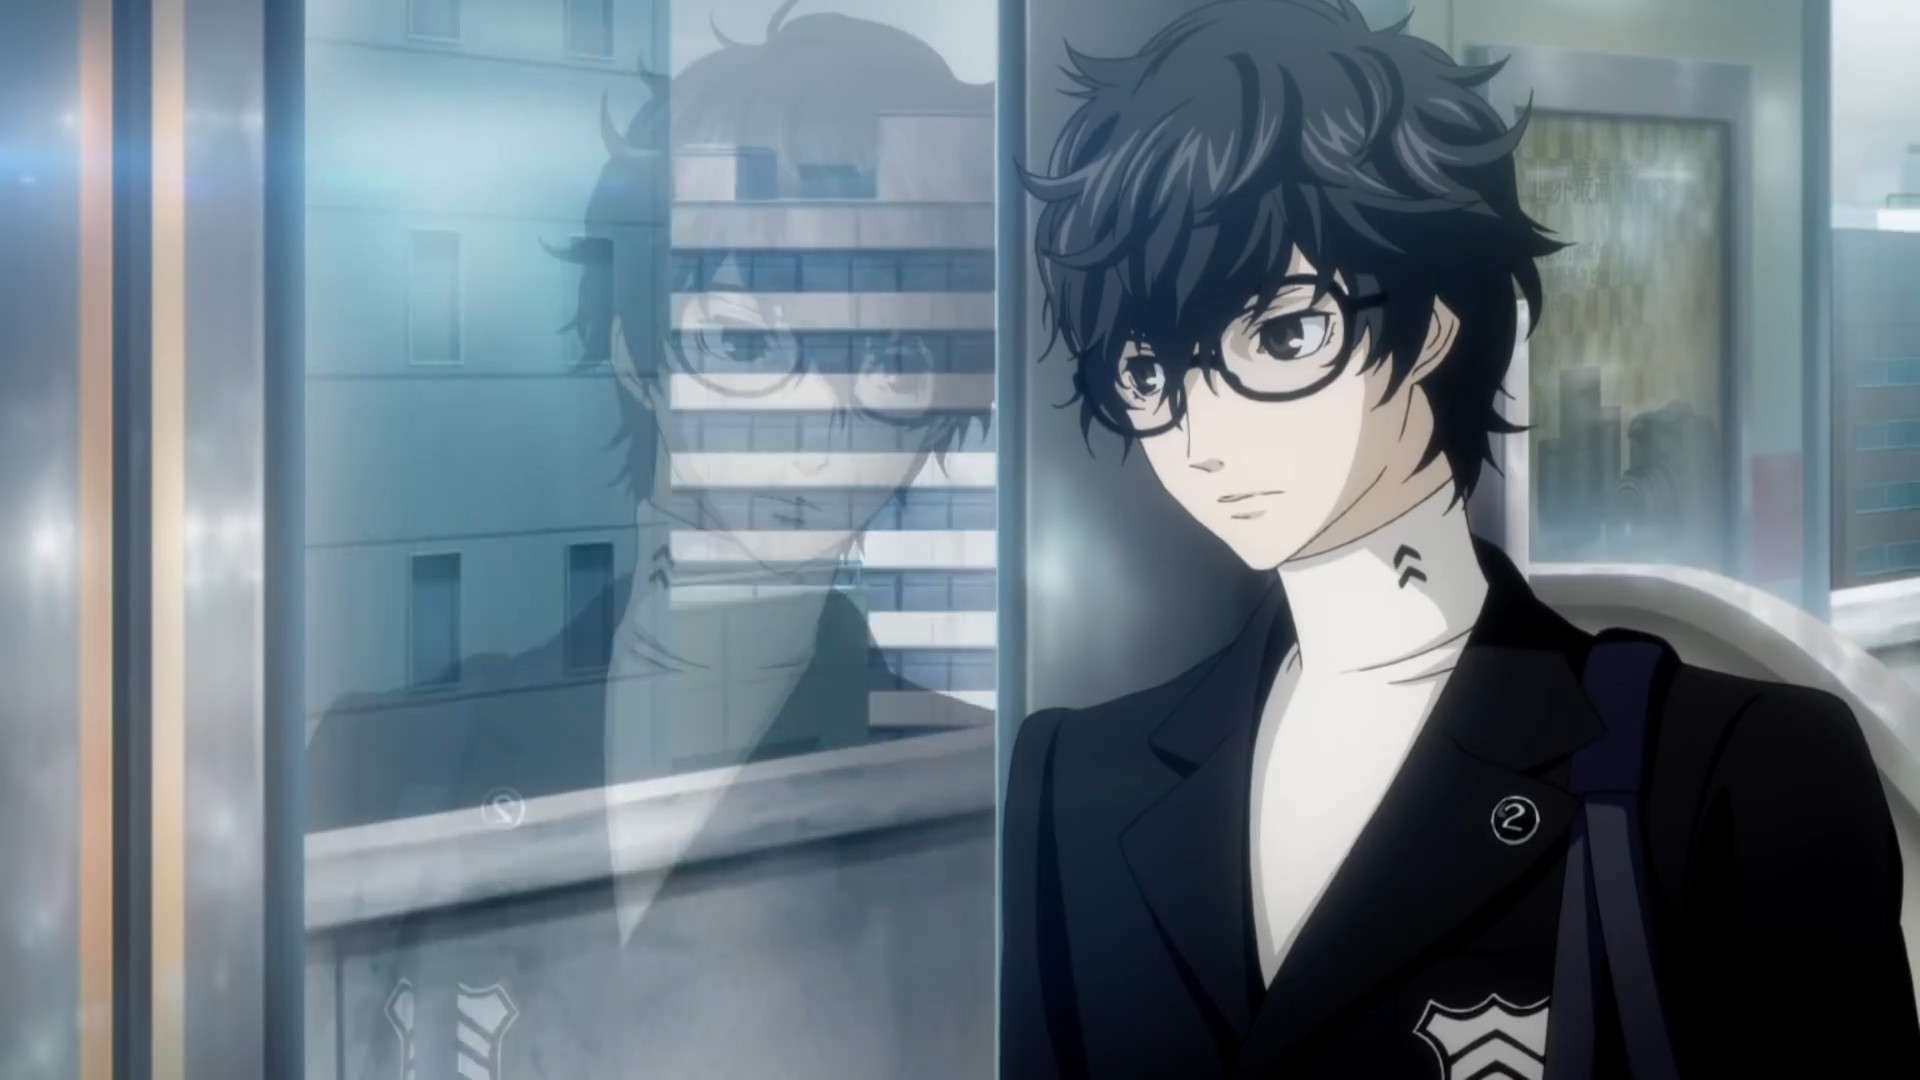 Persona 5 Anime Characters : Persona director katsura hashino discusses storytelling